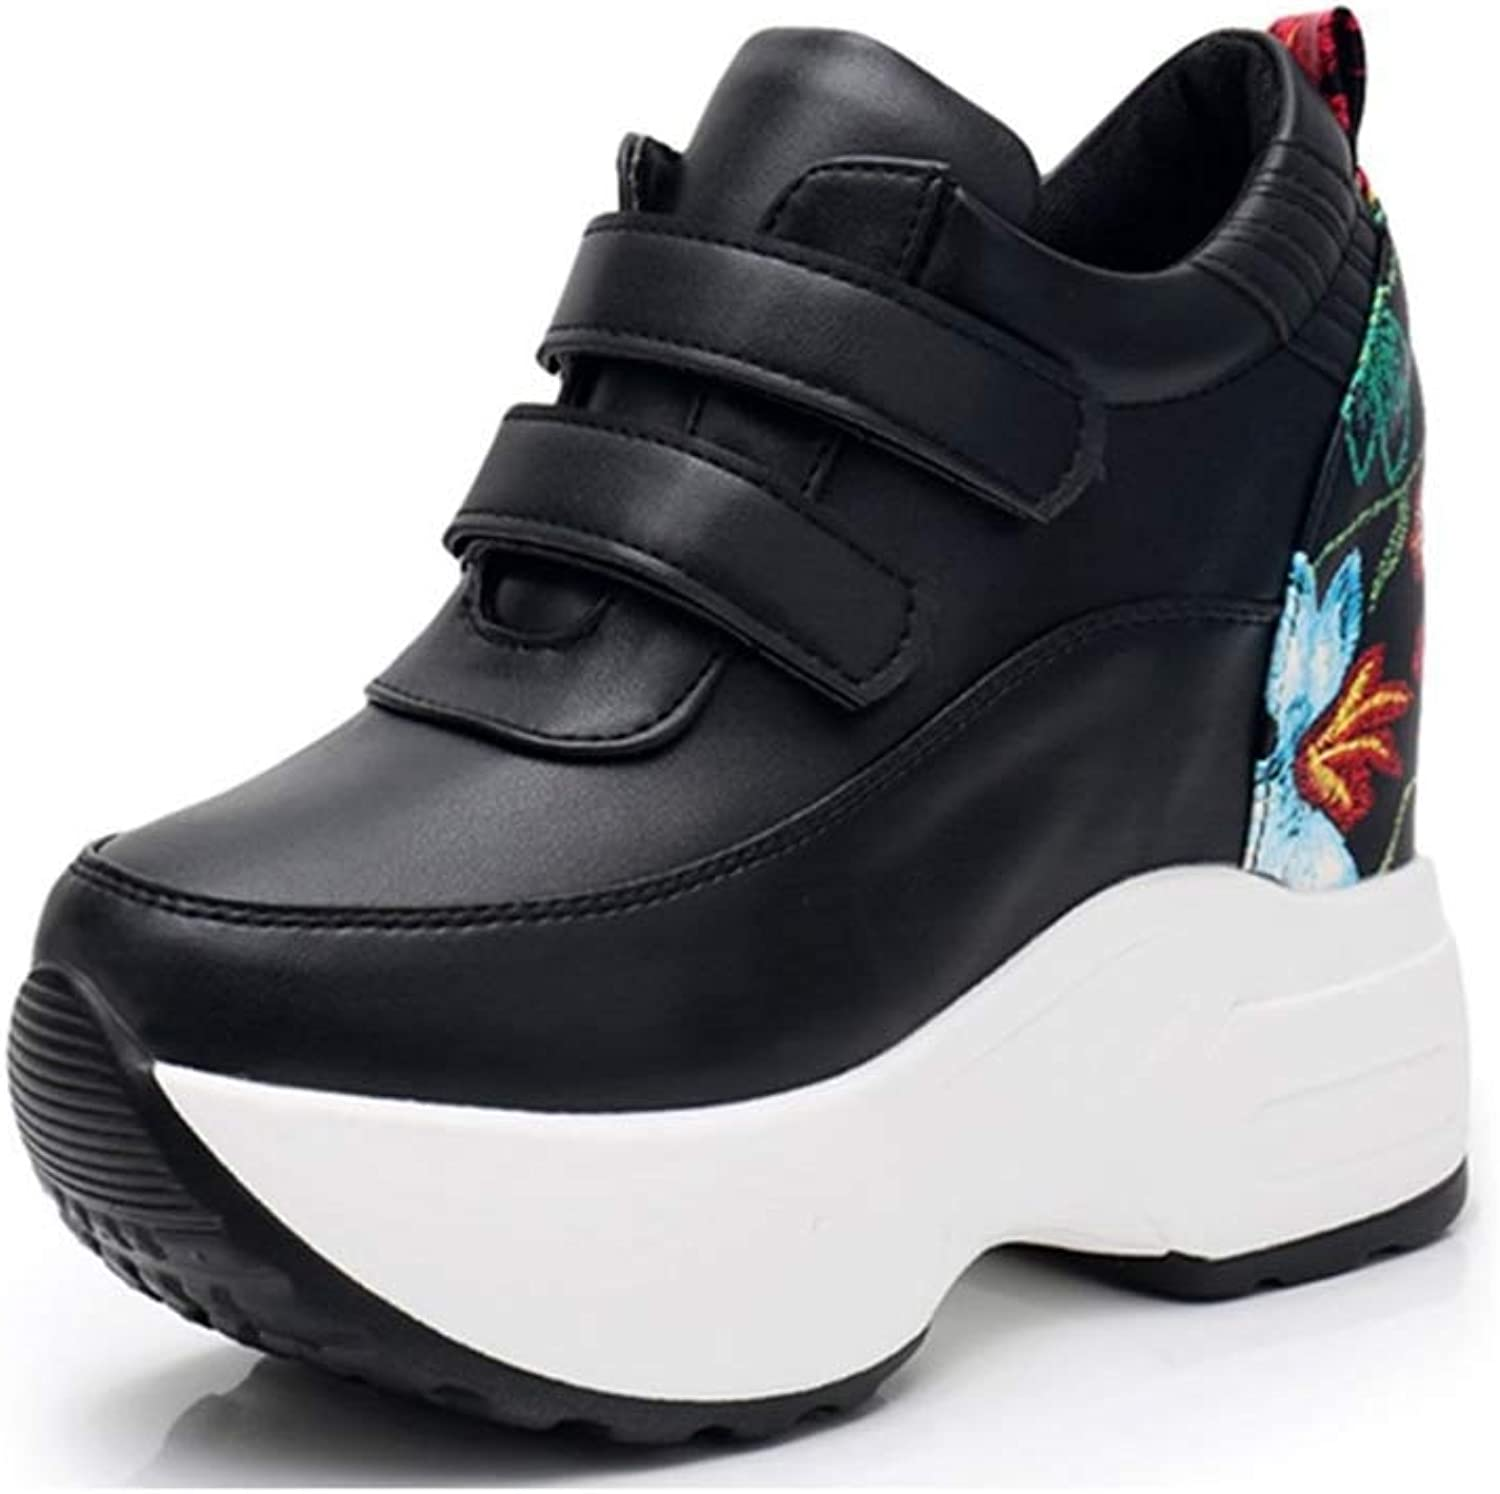 Beautiful - Fashion Womens Wedges Sneakers Fashion Pu Leather Height Increasing Pull On Breathable Casual shoes